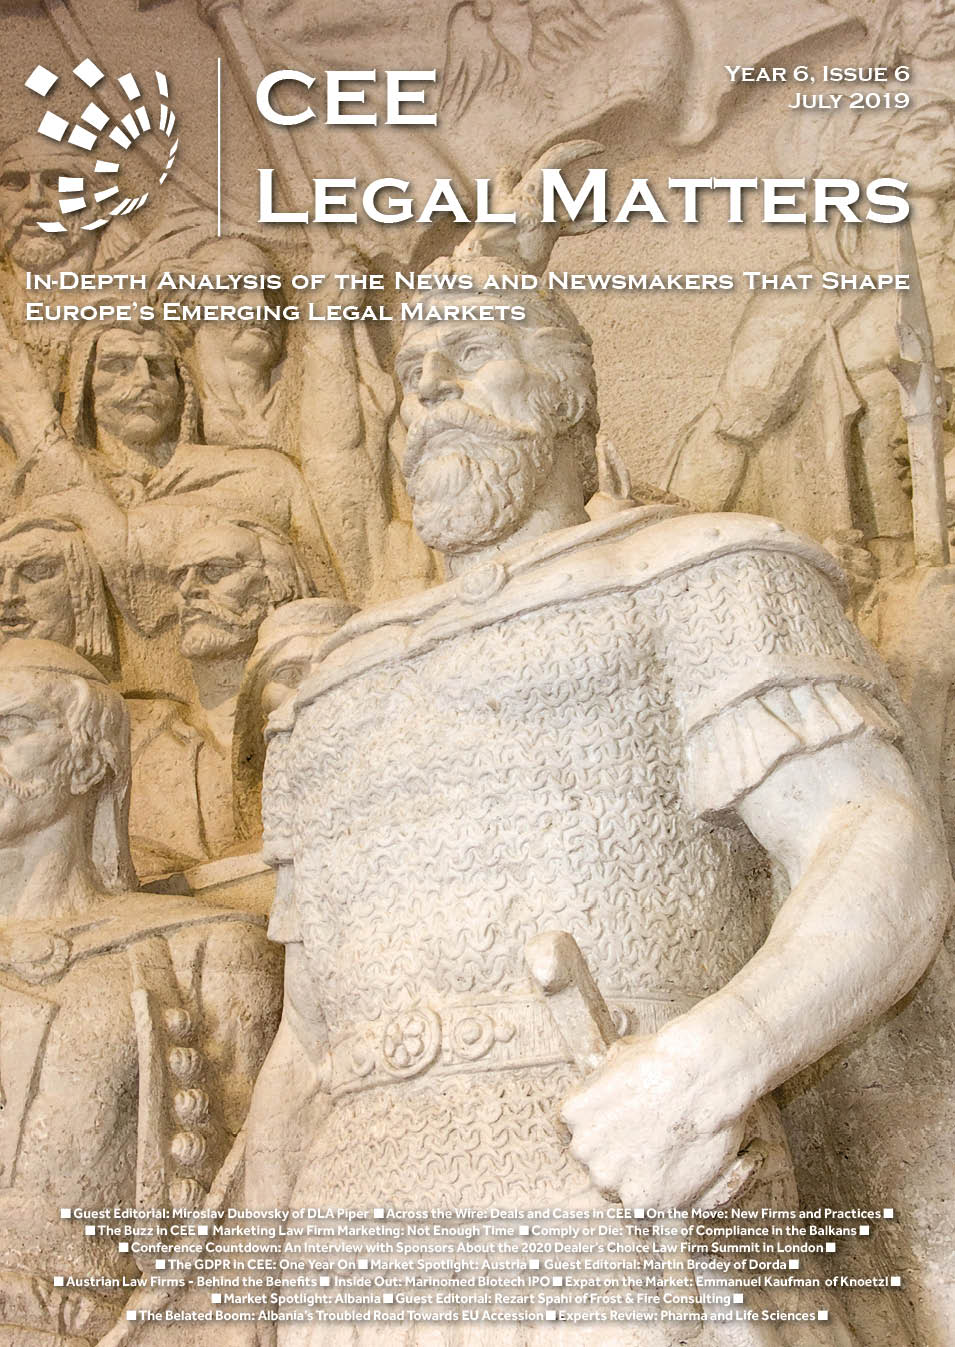 CEE Legal Matters: Issue 6.6.